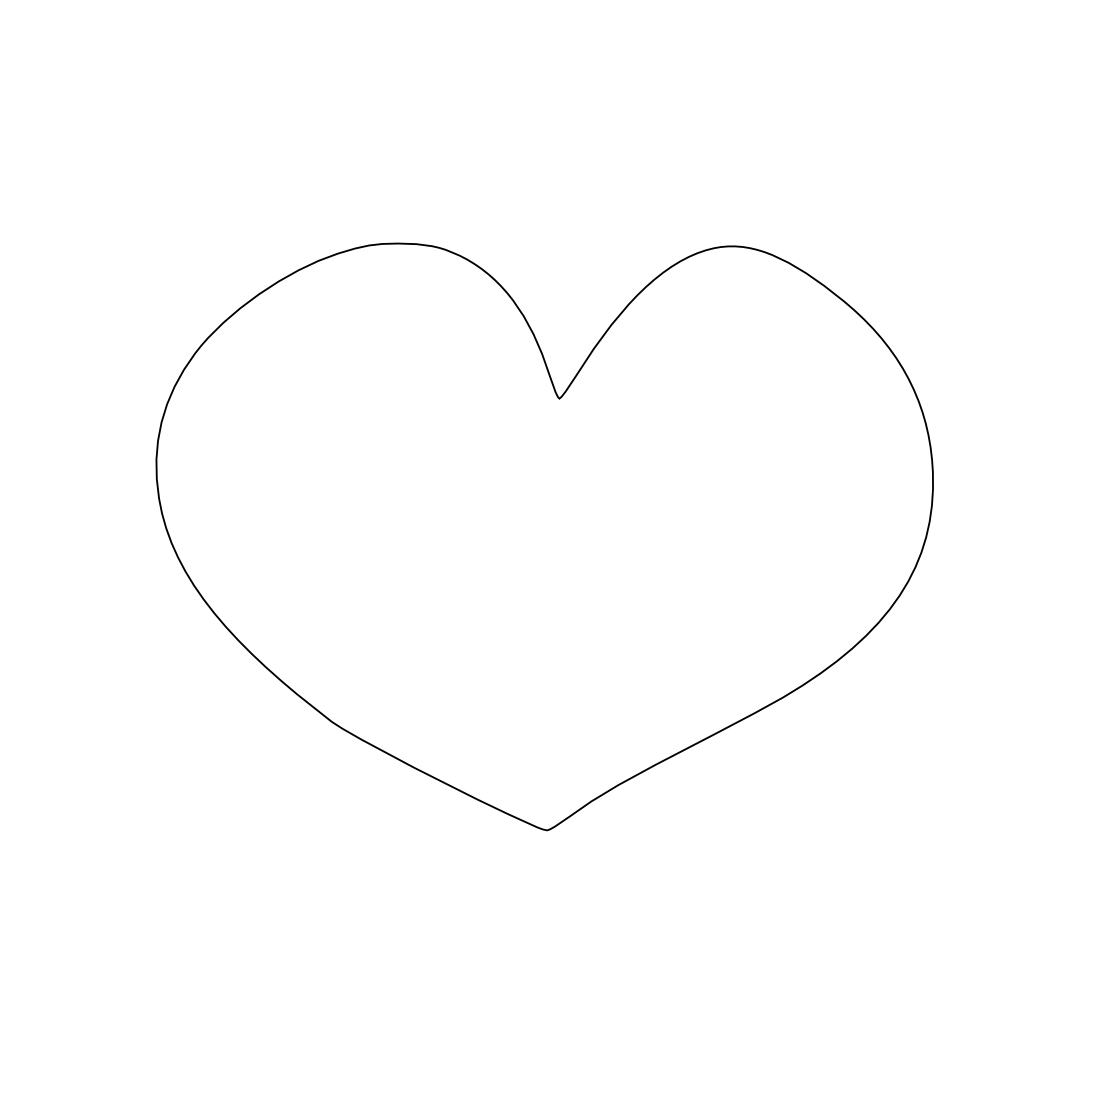 Heart Clip Art Black And White Free Cliparts That You Can Download To